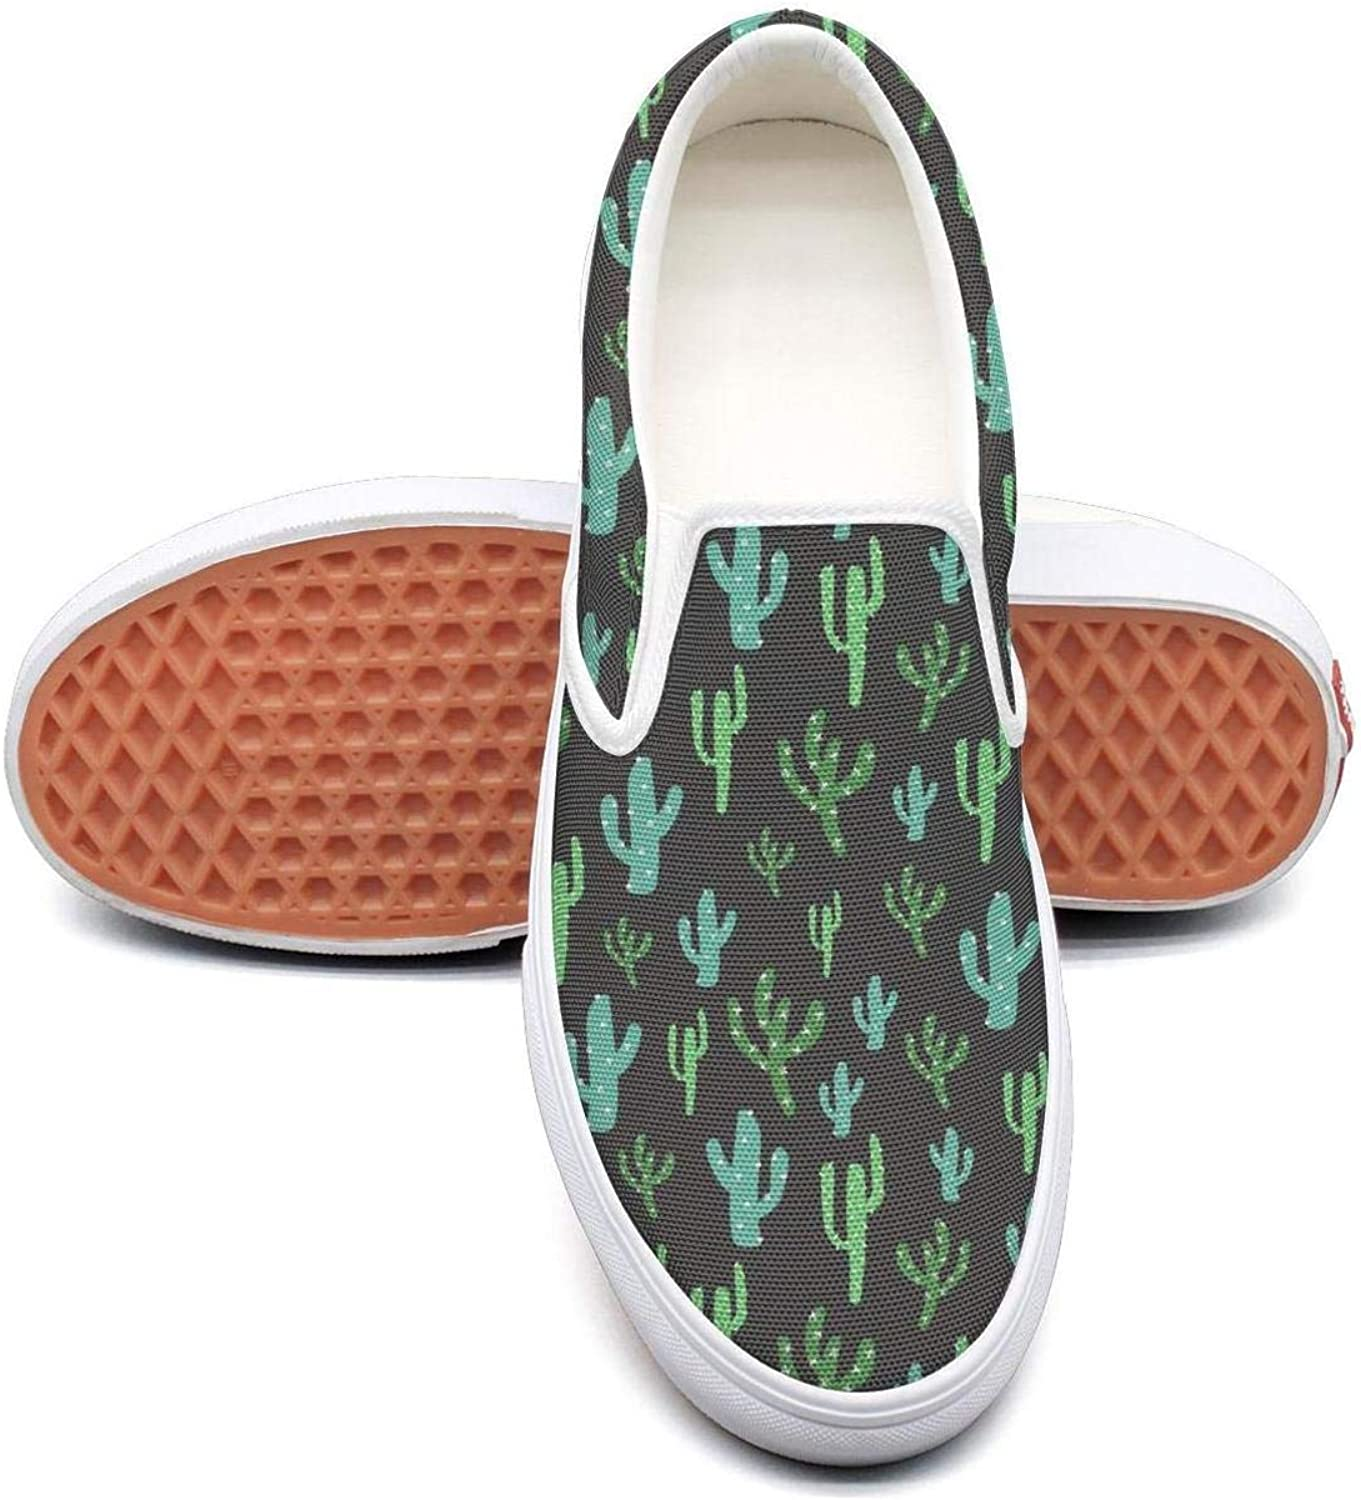 Desert Barell Cactus Prints Slip On Canvas Upper Loafers Canvas shoes for Women Fashion